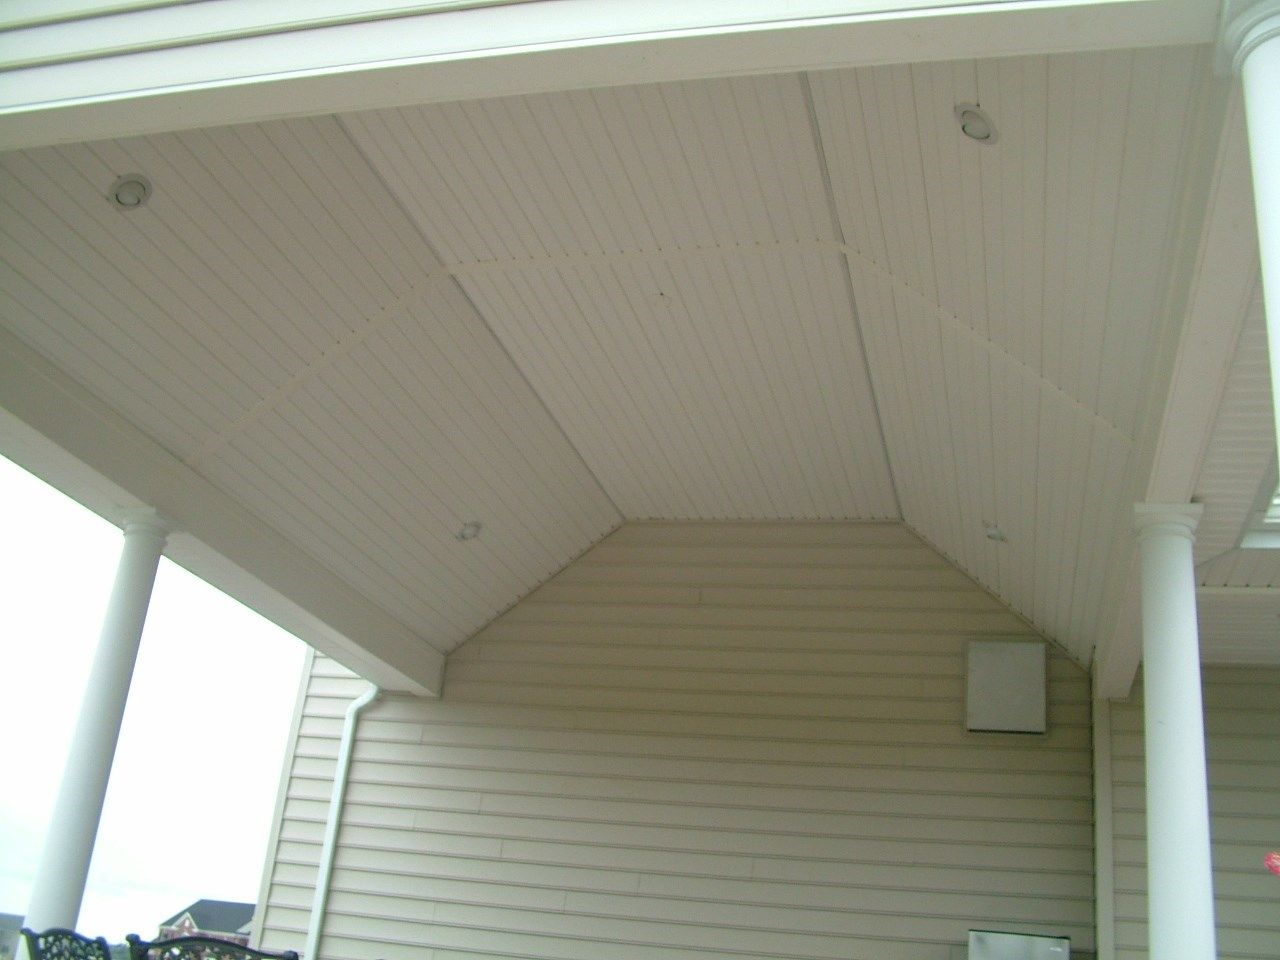 Roof over Paver Patio in Upper Freehold NJ - Picture 3397